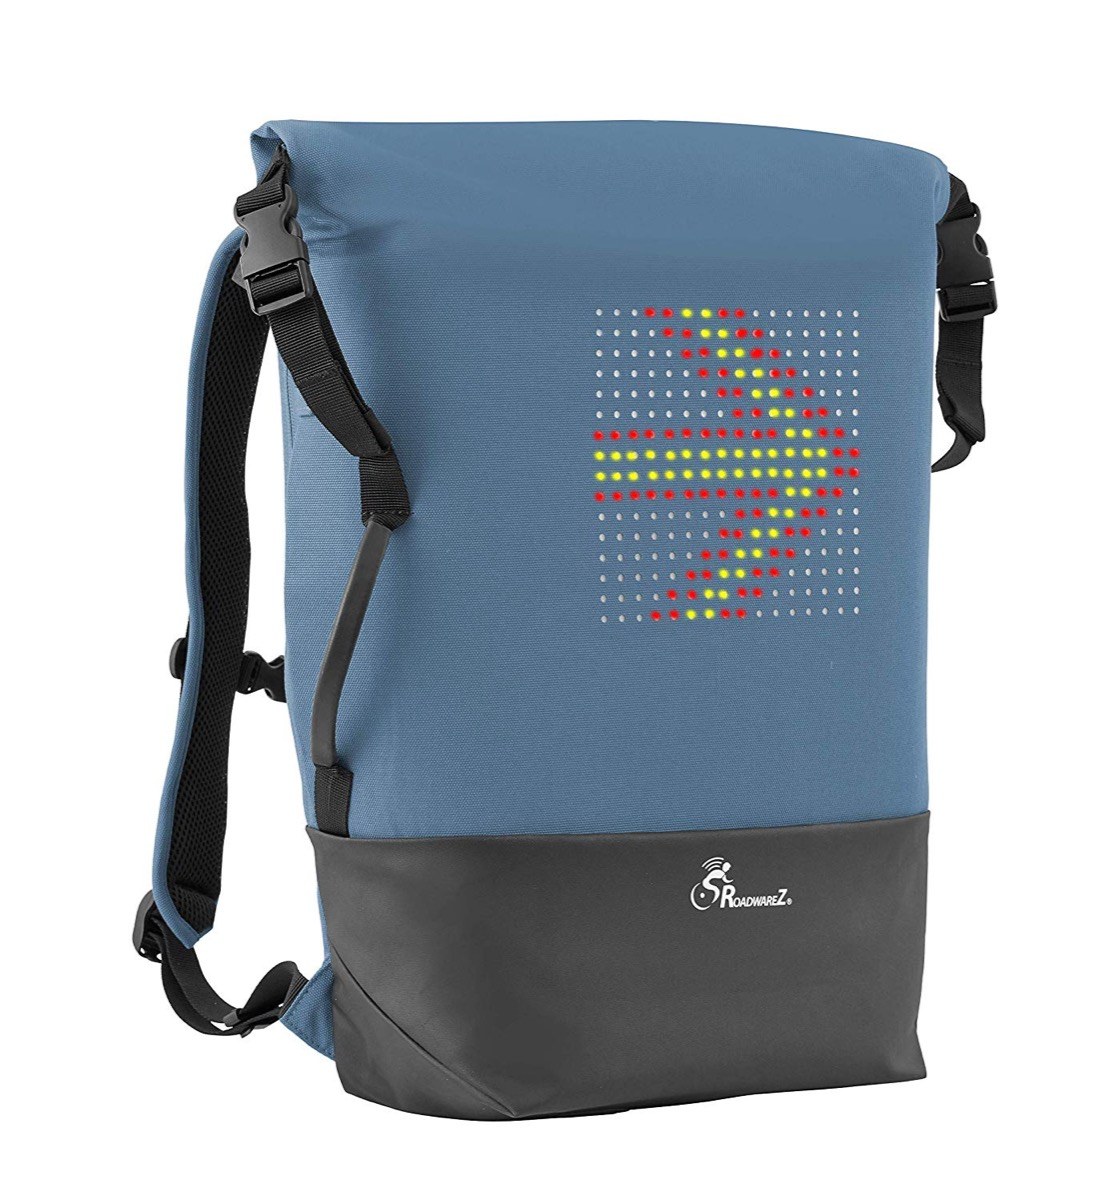 backpack with turning signals